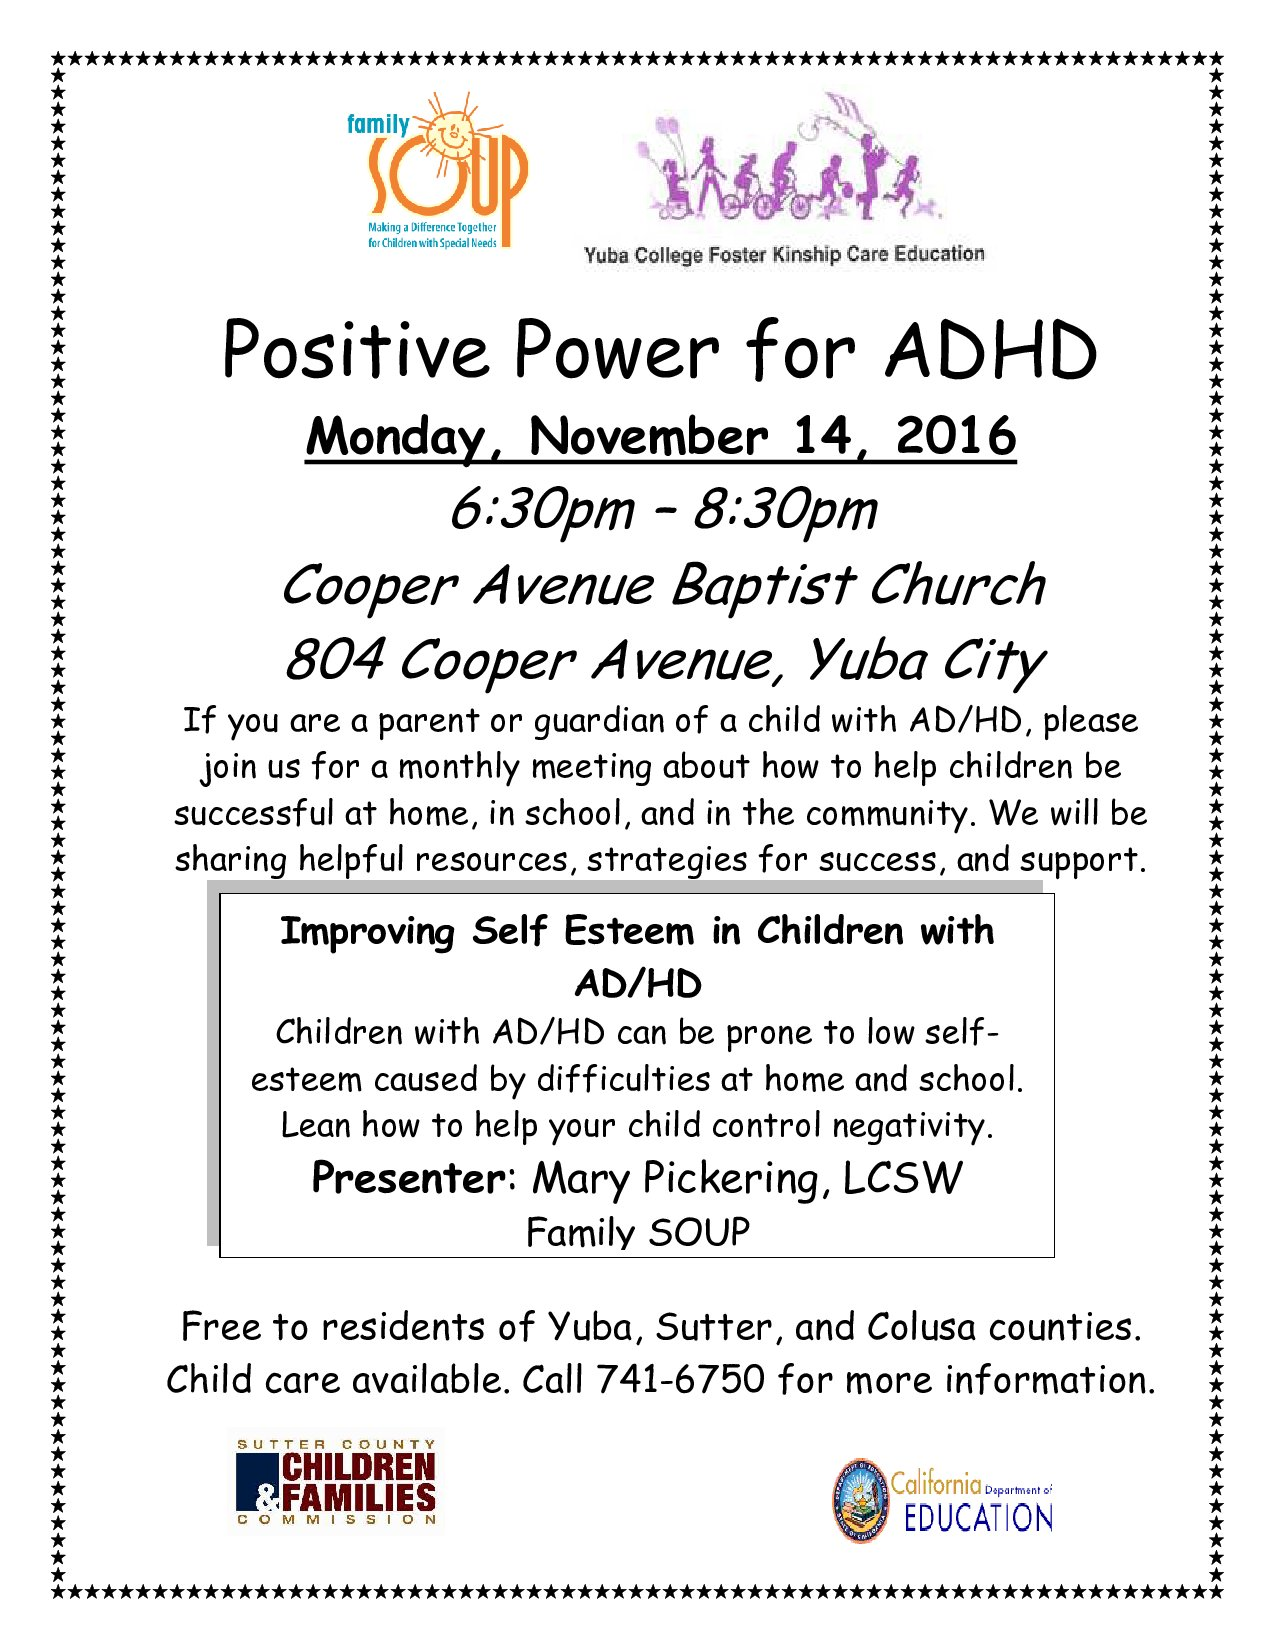 Positive Power for ADHD